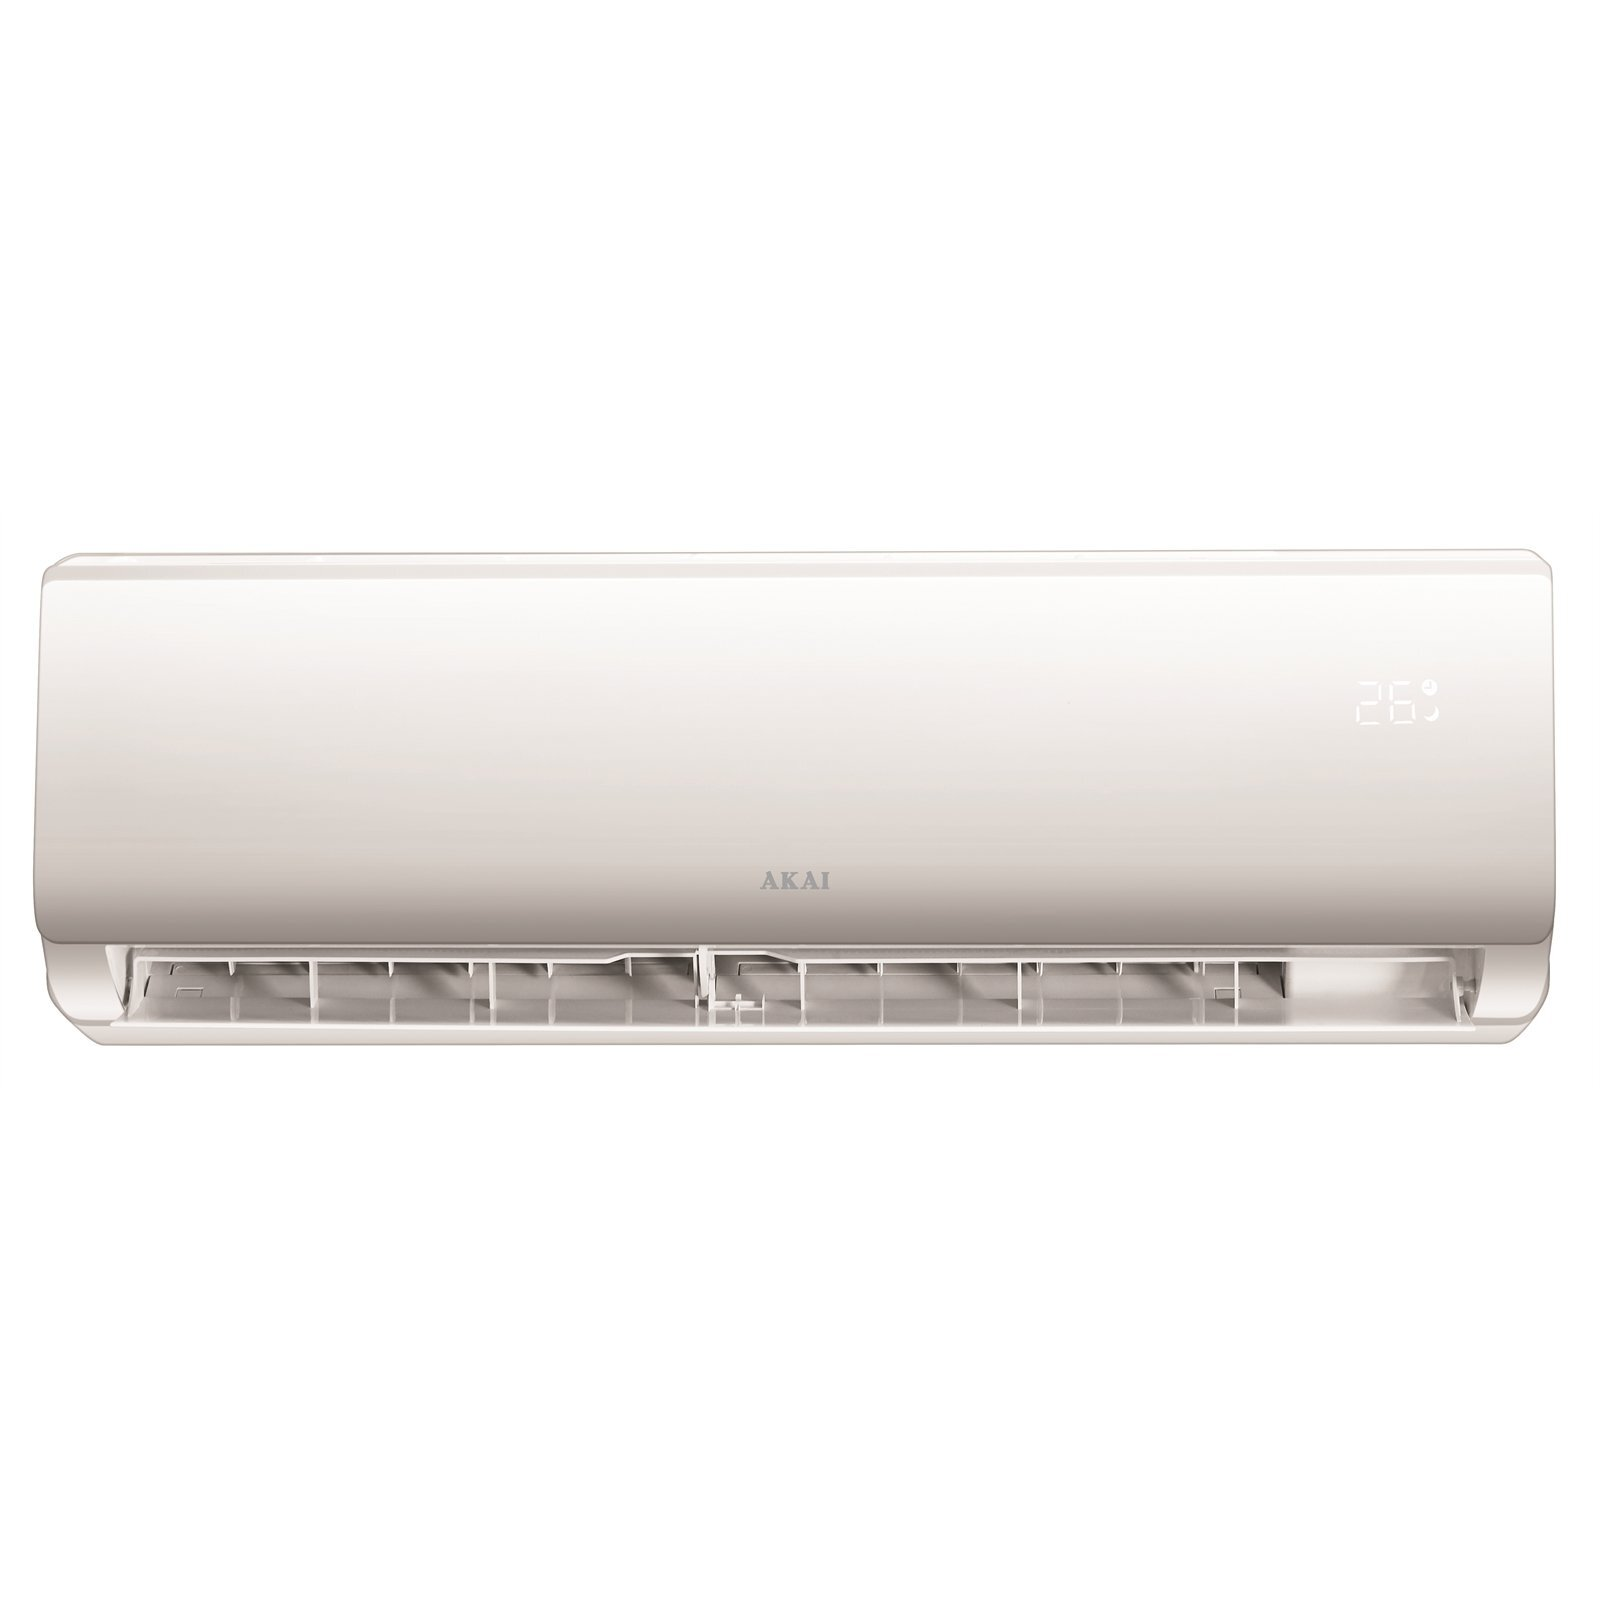 Akai 5.1kW Reverse Cycle Inverter Split System Air Conditioner